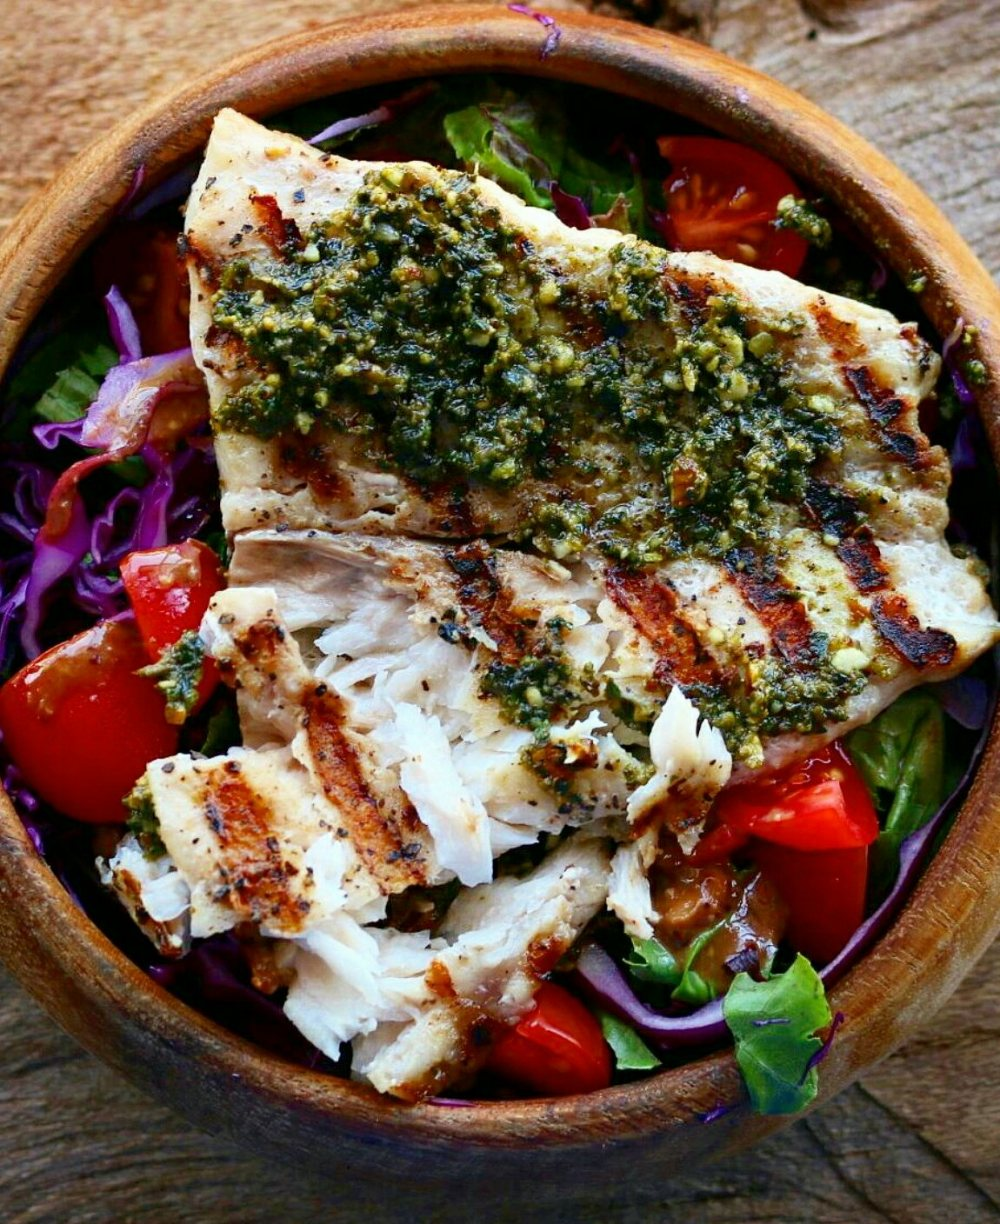 Grilled Tilapia With Basil Pesto